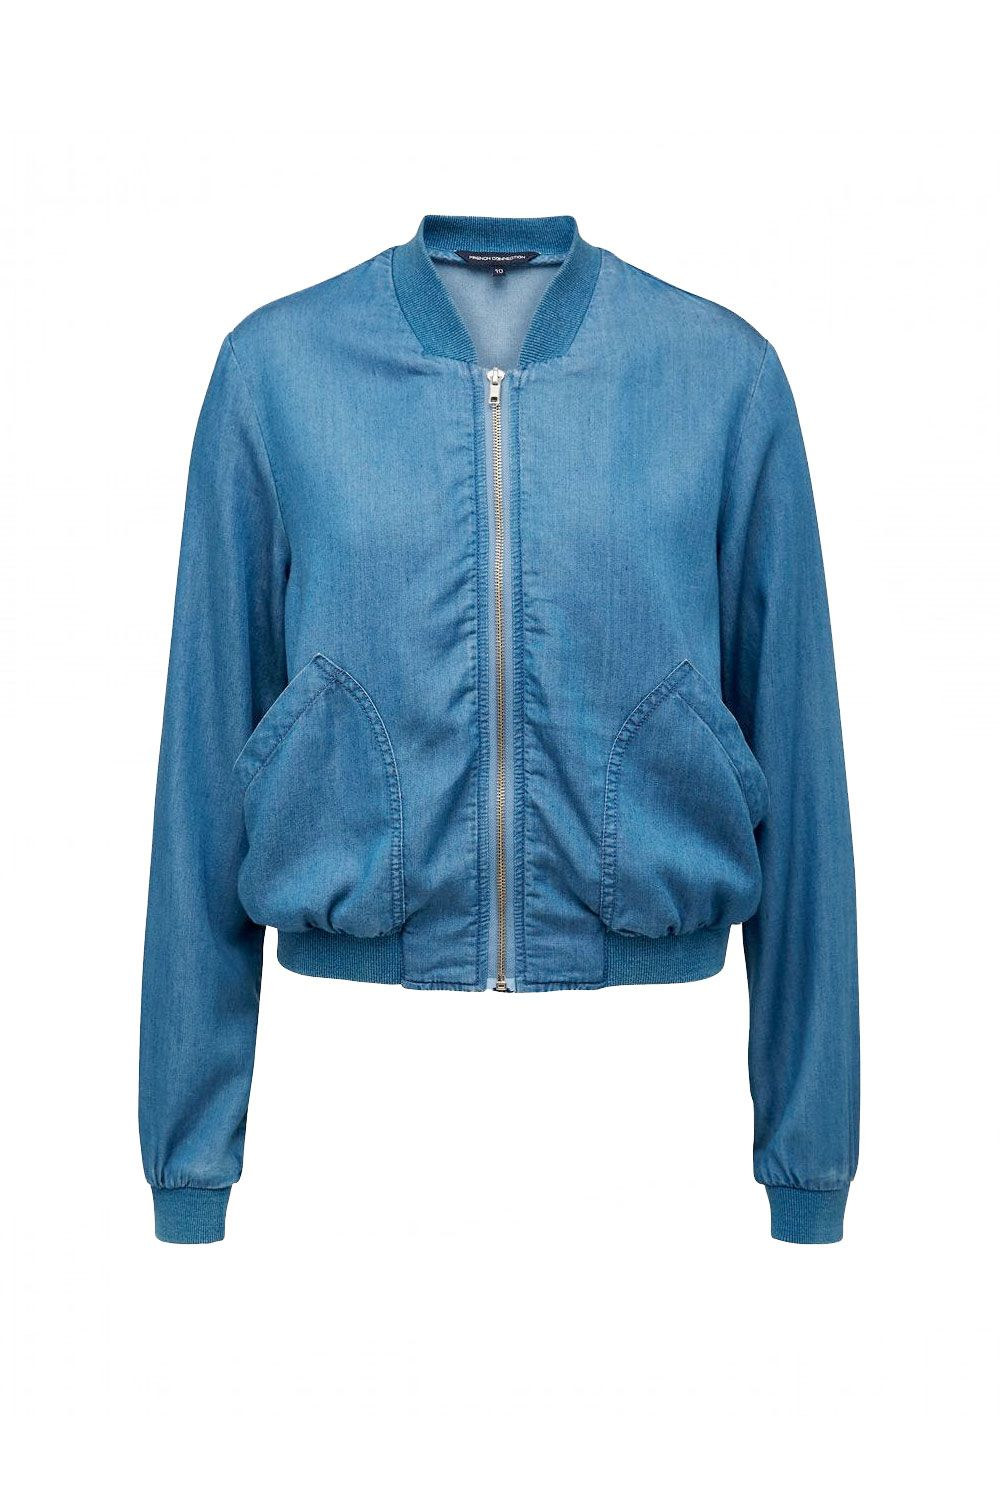 """That leather jacket on your splurge list stands down to this lightweight version. And it won't set you back a paycheck, either.  <em>French Connection chambray bomber jacket, $79; <a href=""""http://www.frenchconnection.com.au/chambray-bomber-jacket/w2/i7569373/"""" target=""""_blank"""">frenchconnection.com</a></em>"""